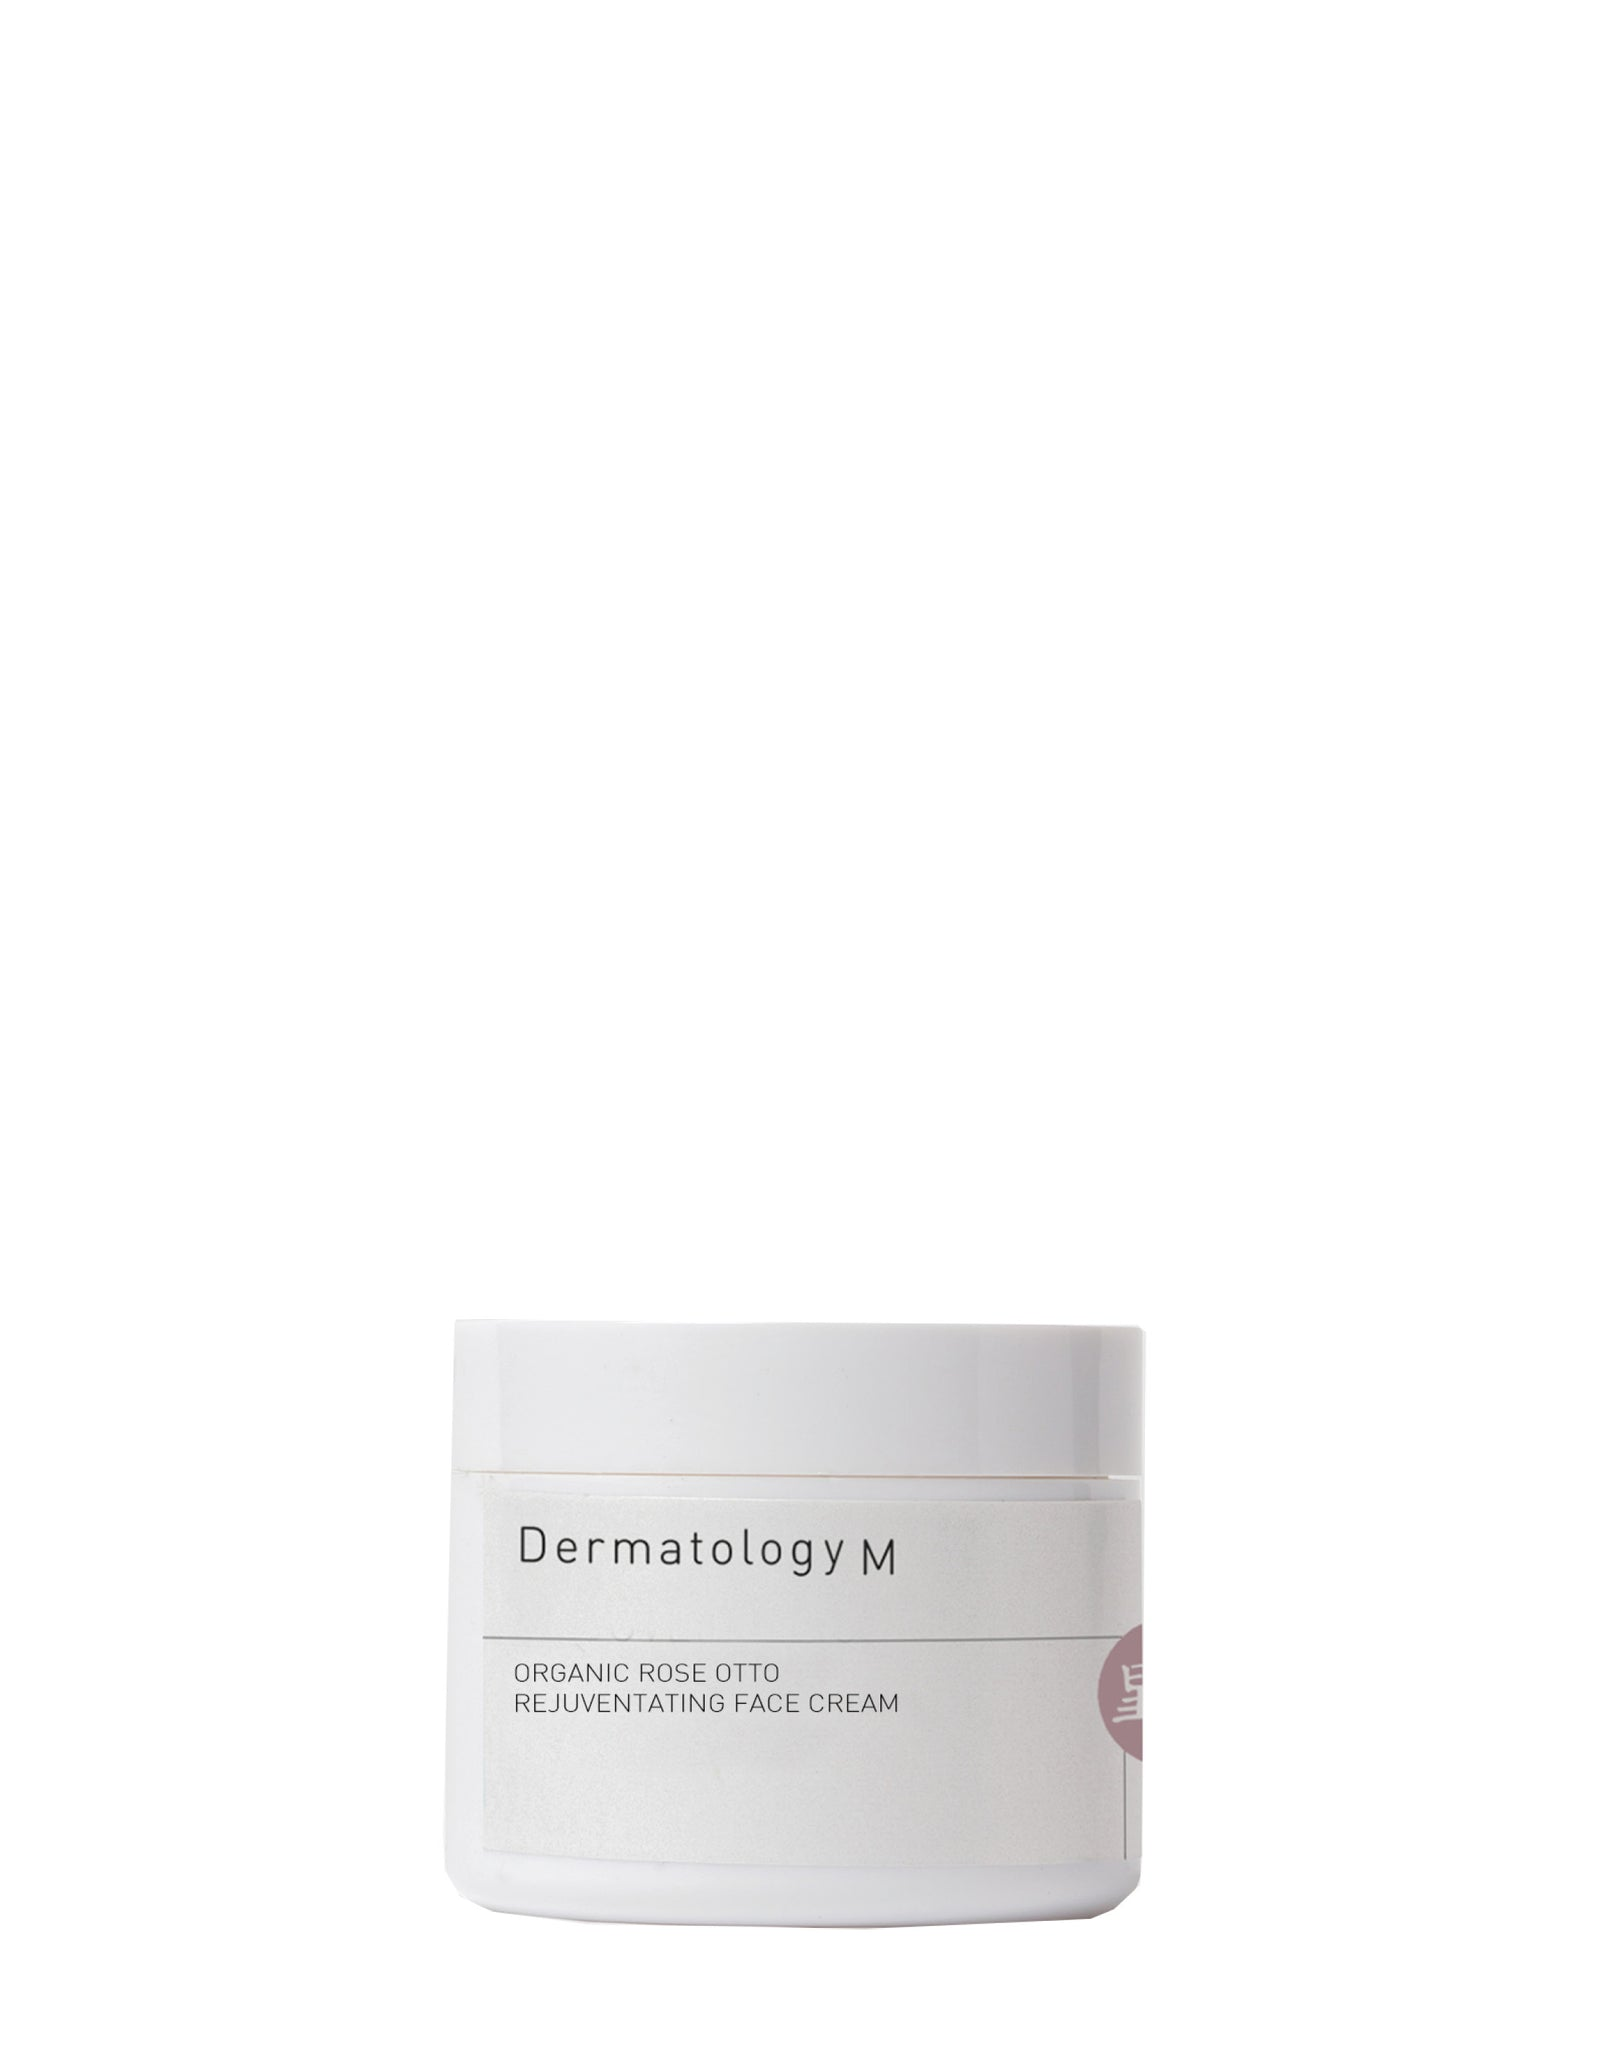 Rose Otto Rejuvenating Cream